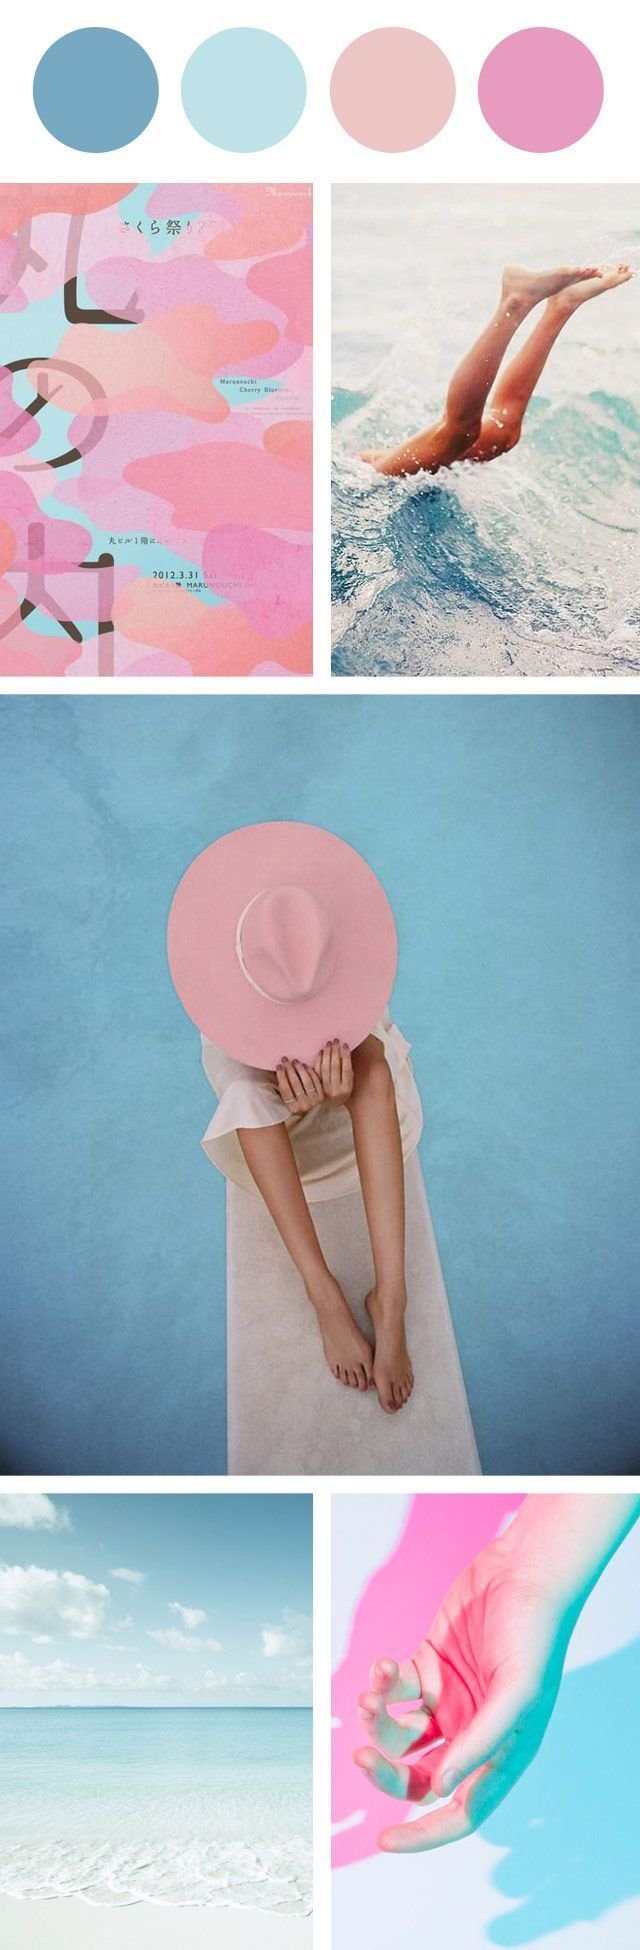 Design Quixotic: design and other beautiful miscellany. moodboard